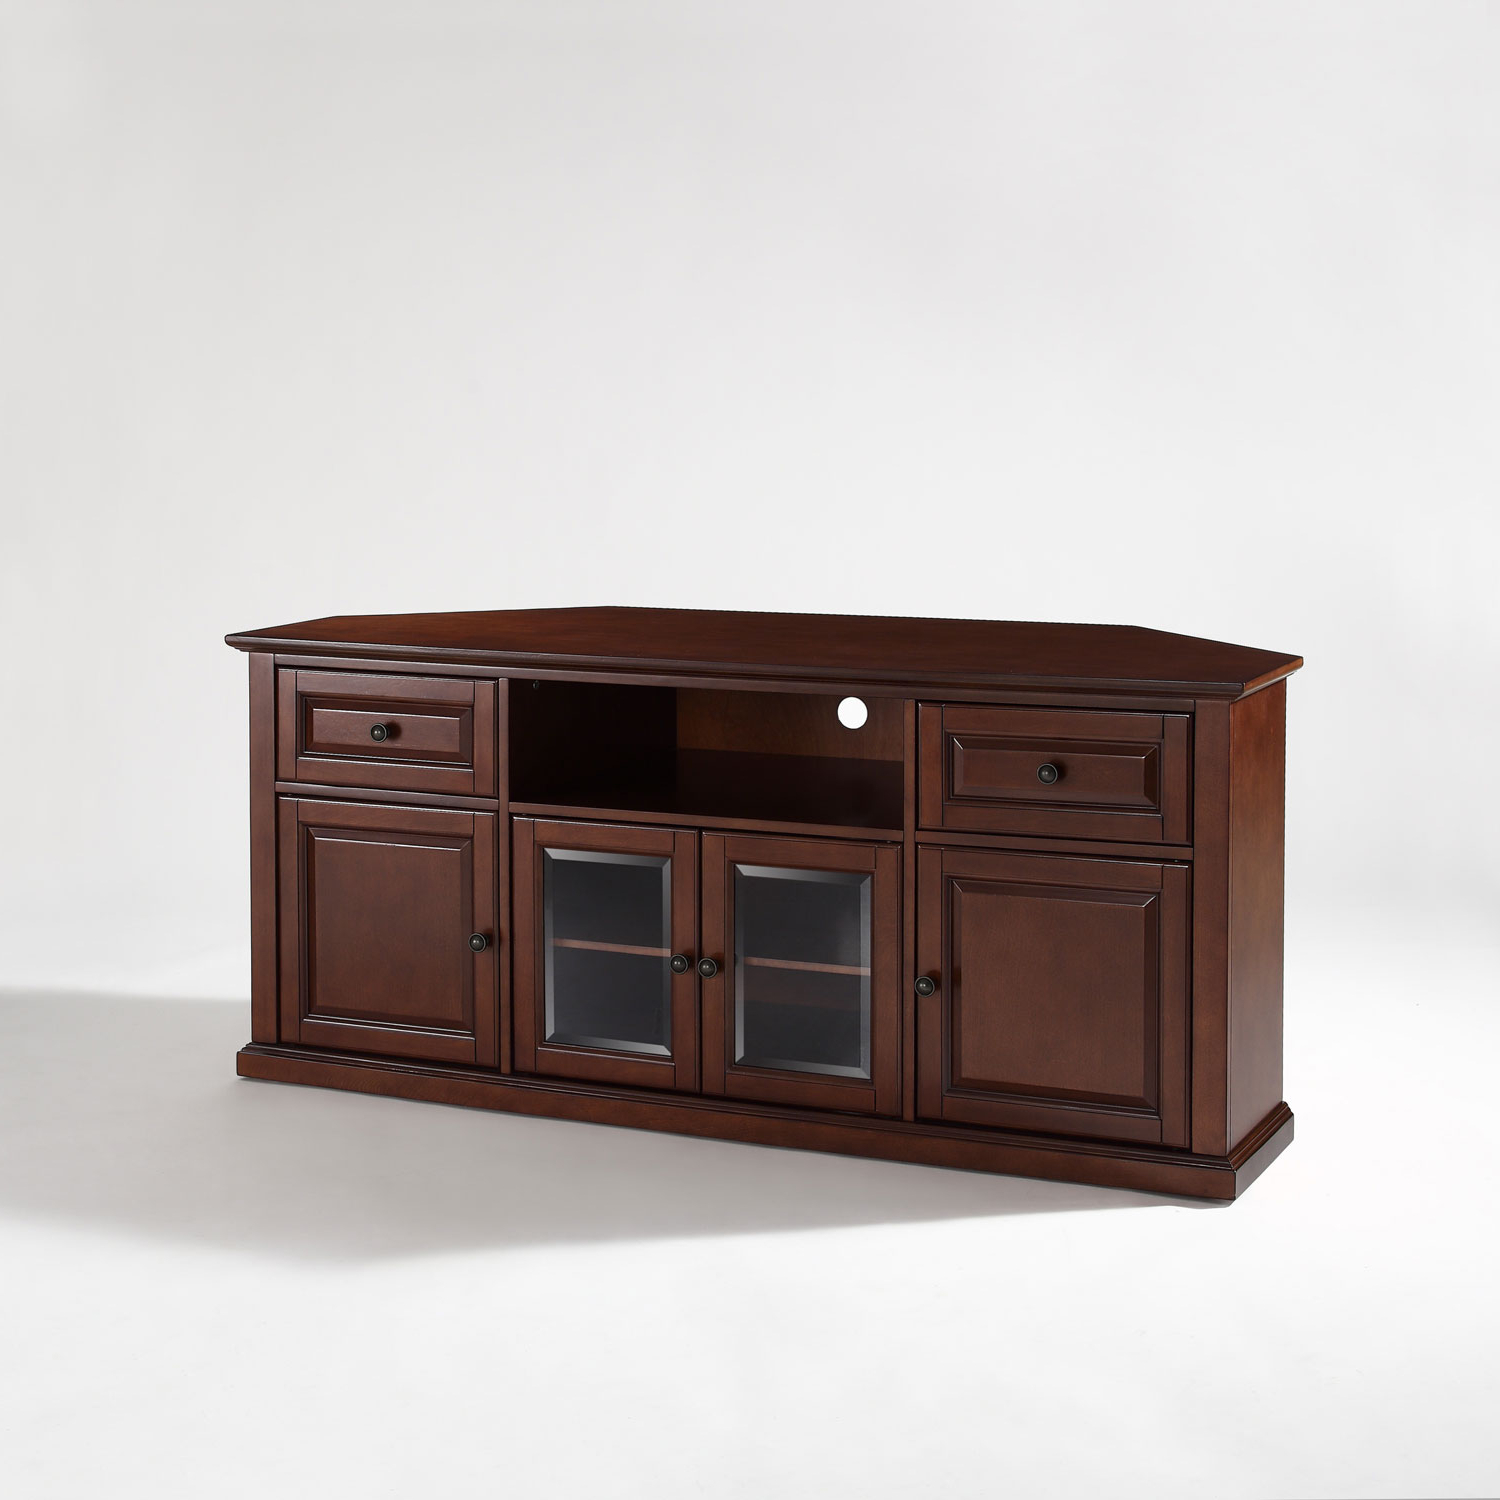 Most Recently Released Corner Tv Stand In Crosley Furniture Inch Vintage Mahogany Plans Throughout Tv Stands And Cabinets (View 6 of 20)